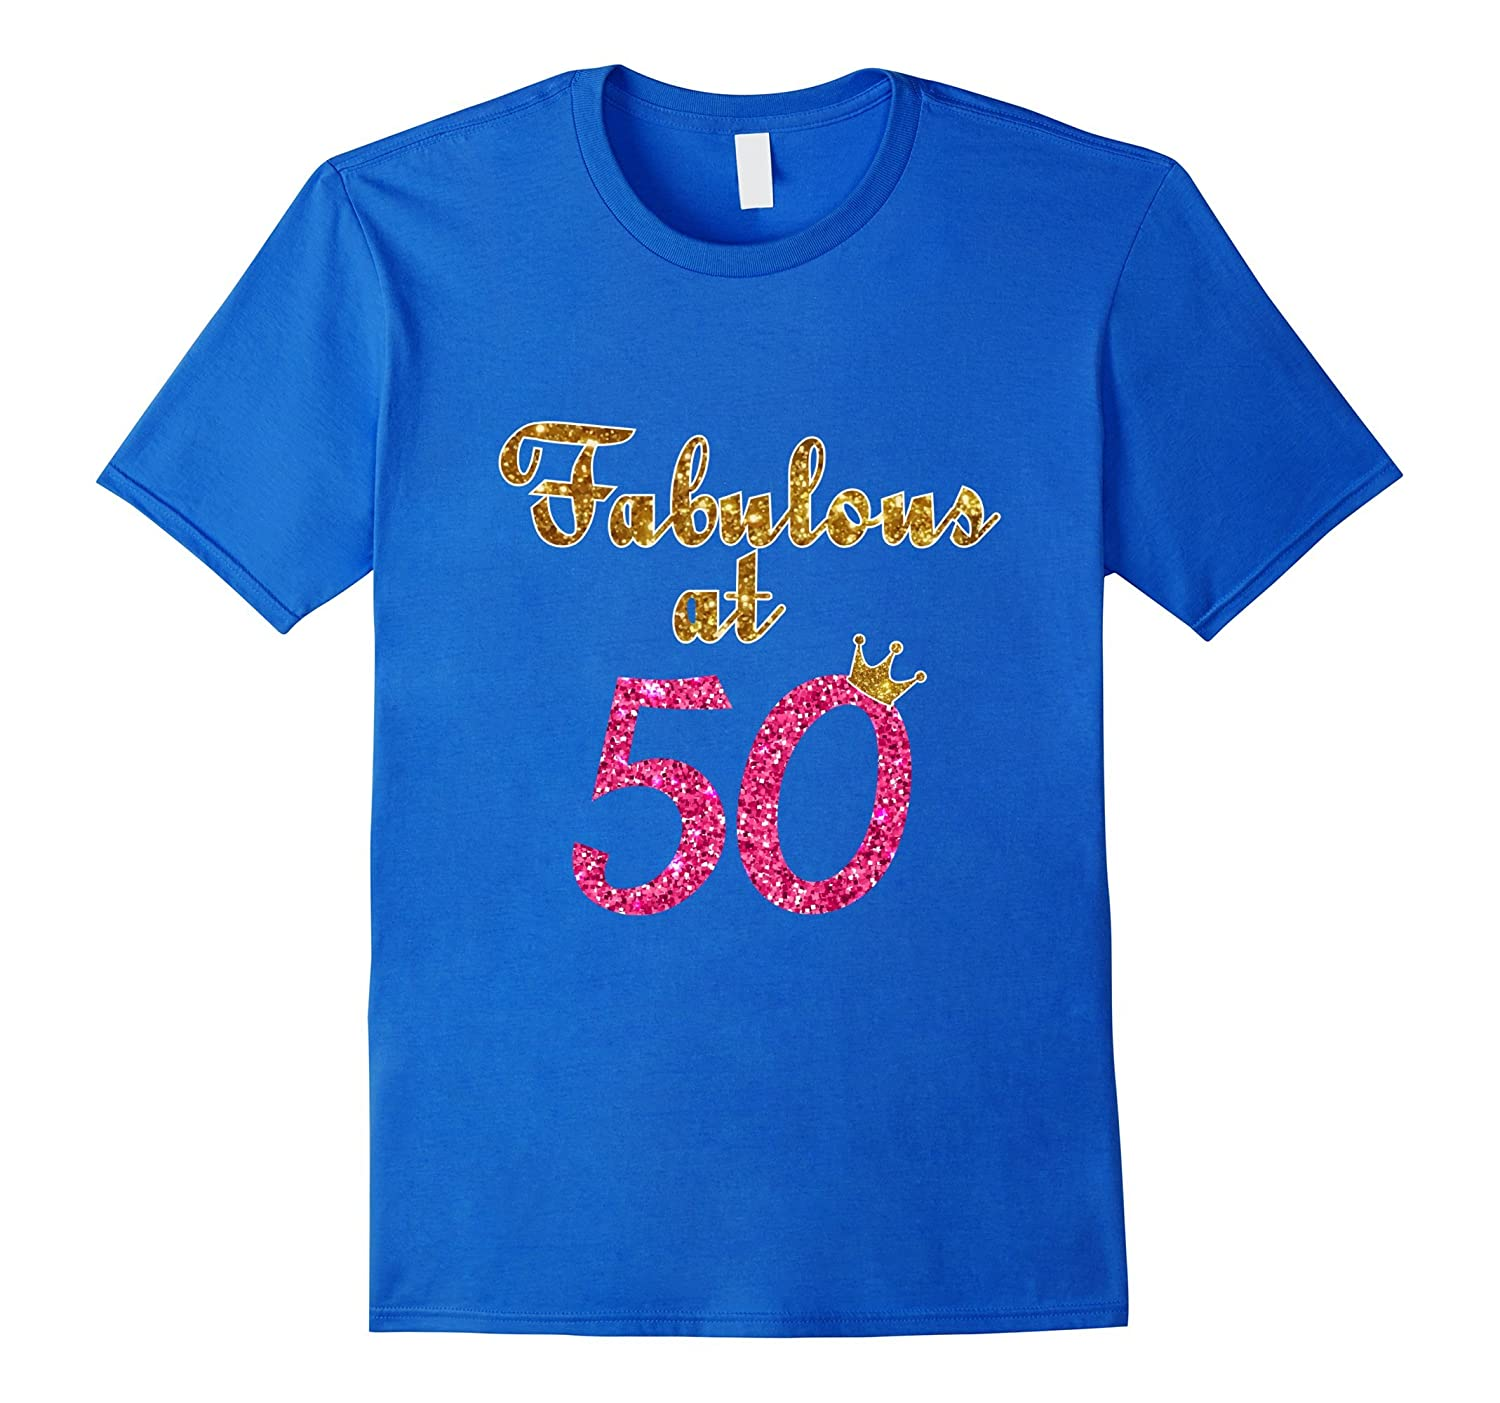 a86a0ea7 50th Birthday Shirt Fabulous At 50 Shirts For Womens T-shirt-ANZ ...